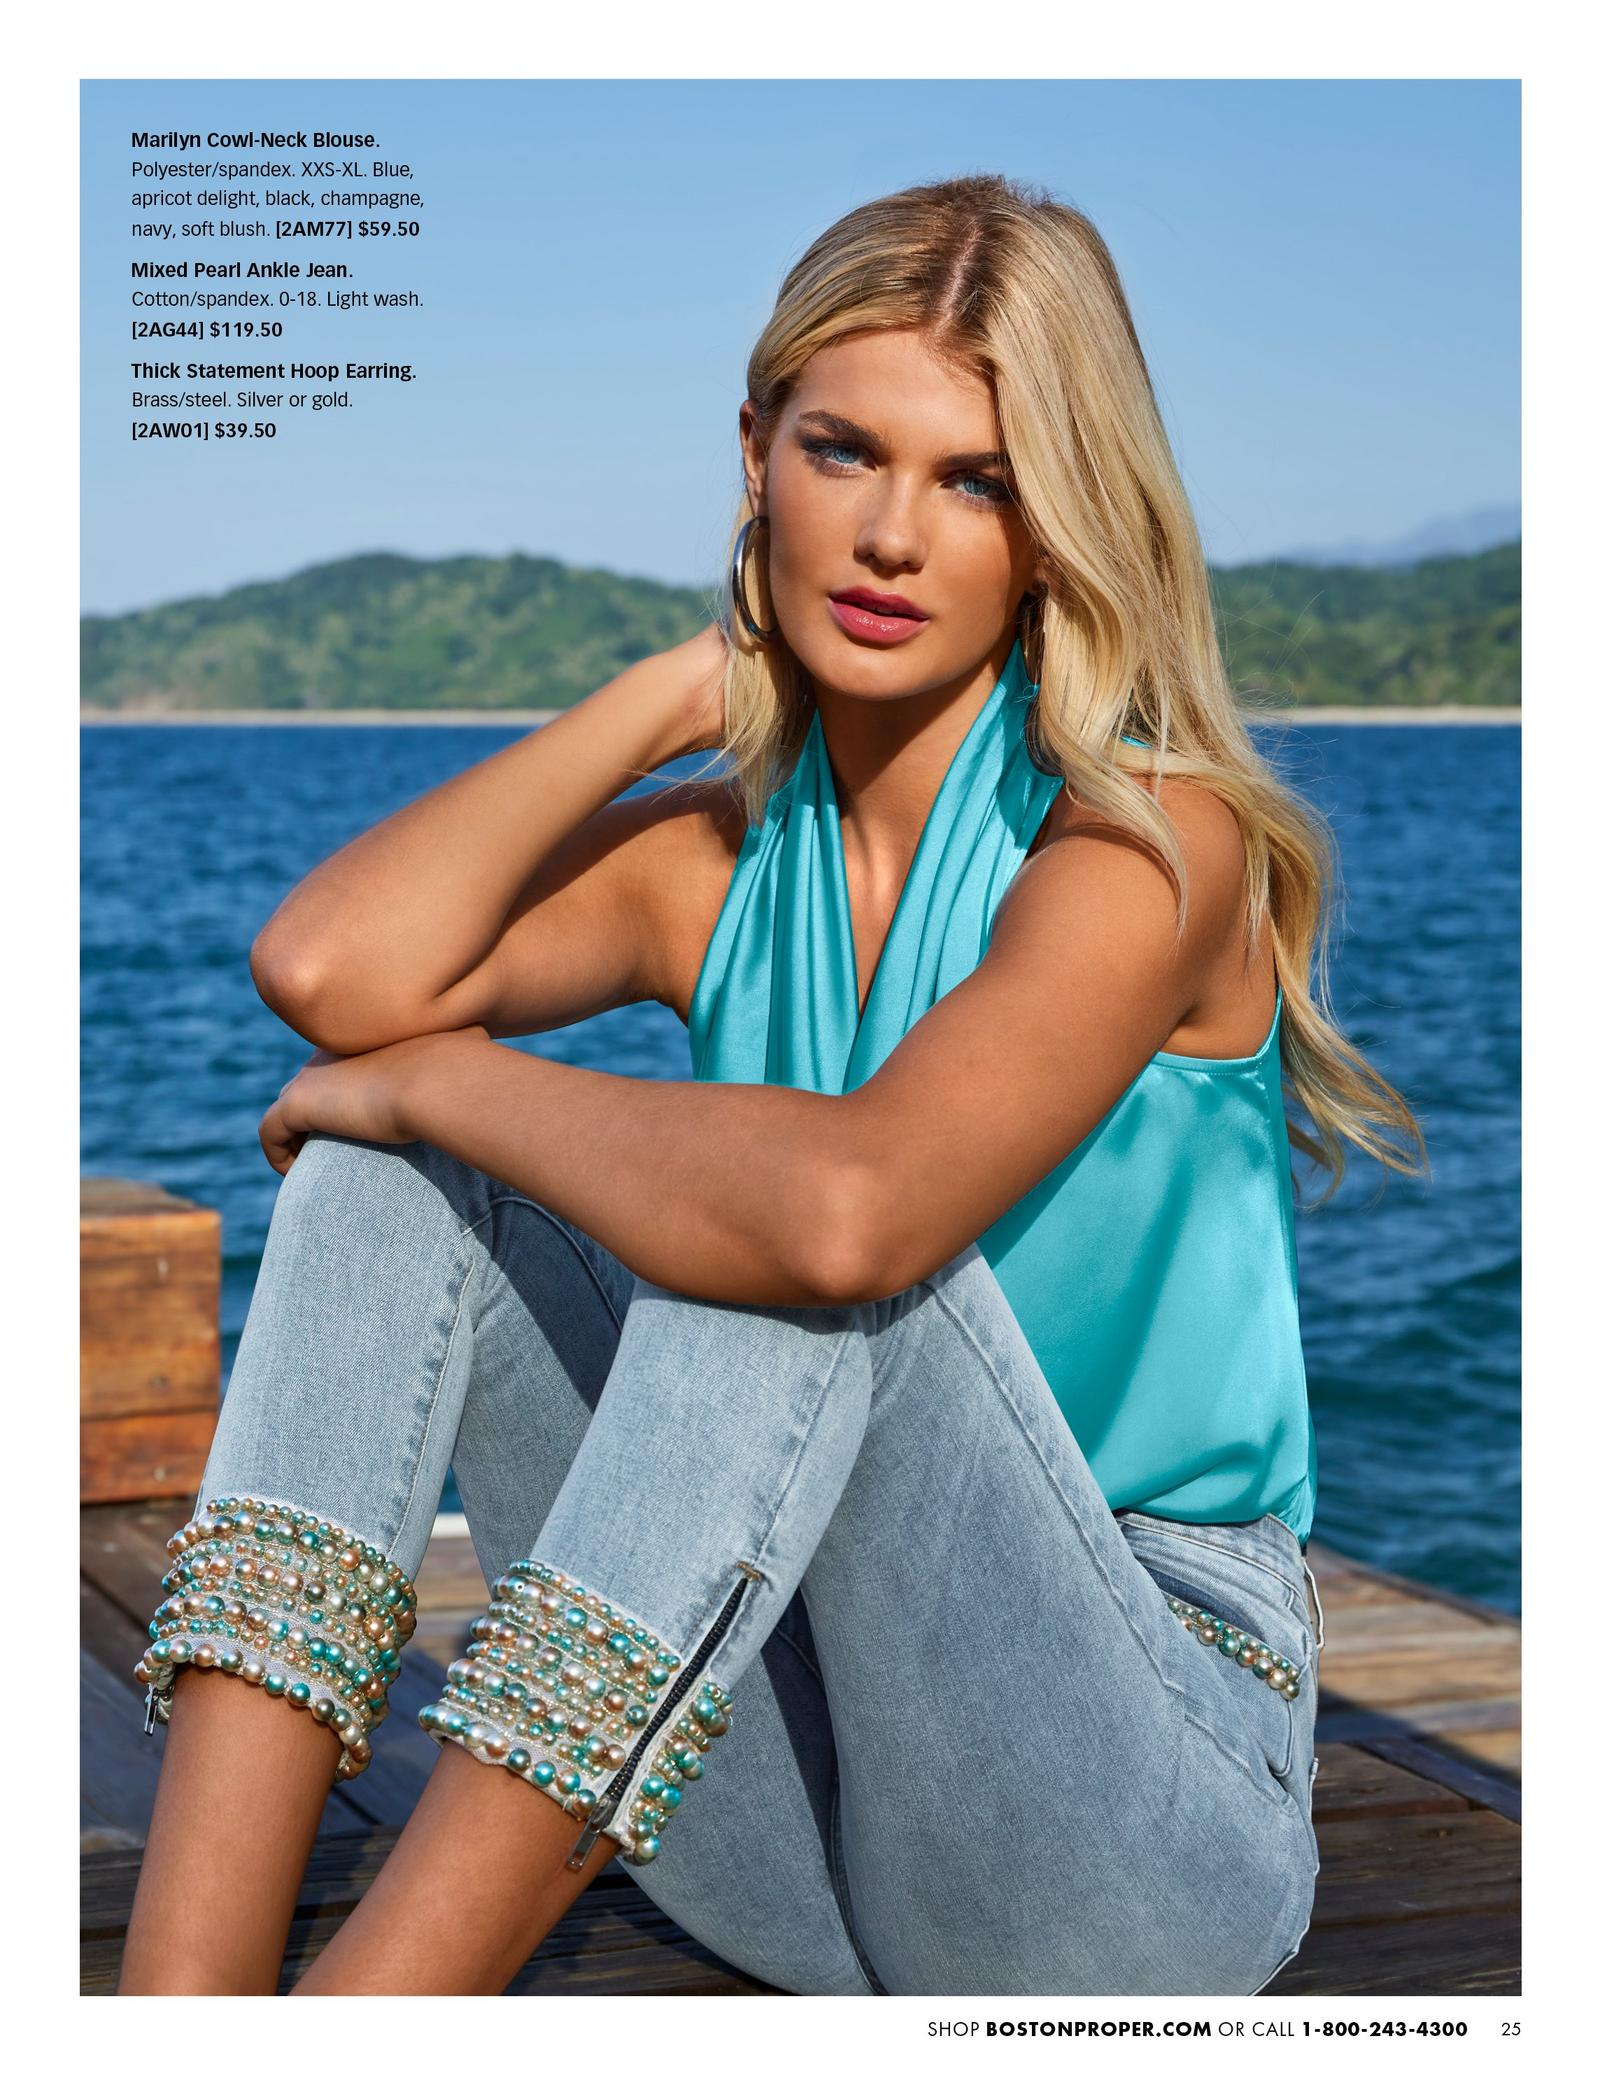 model wearing a light blue sleeveless cowl neck blouse and jewel embellished ankle jeans.